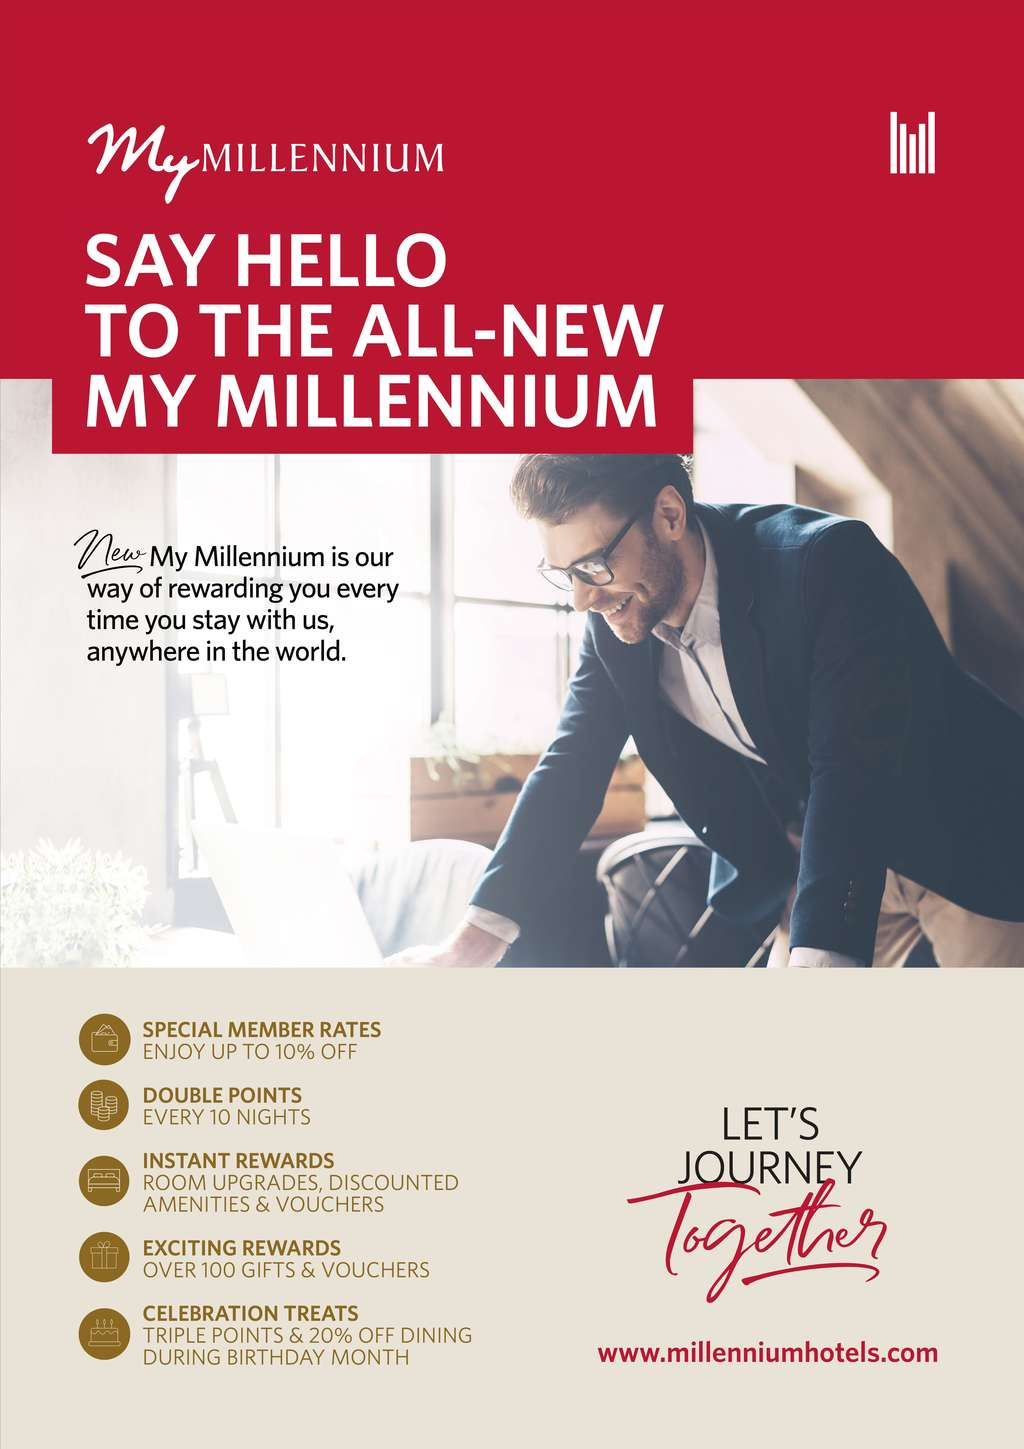 Millennium Hotels & Resorts Announces New My Millennium Guest Rewards Programme